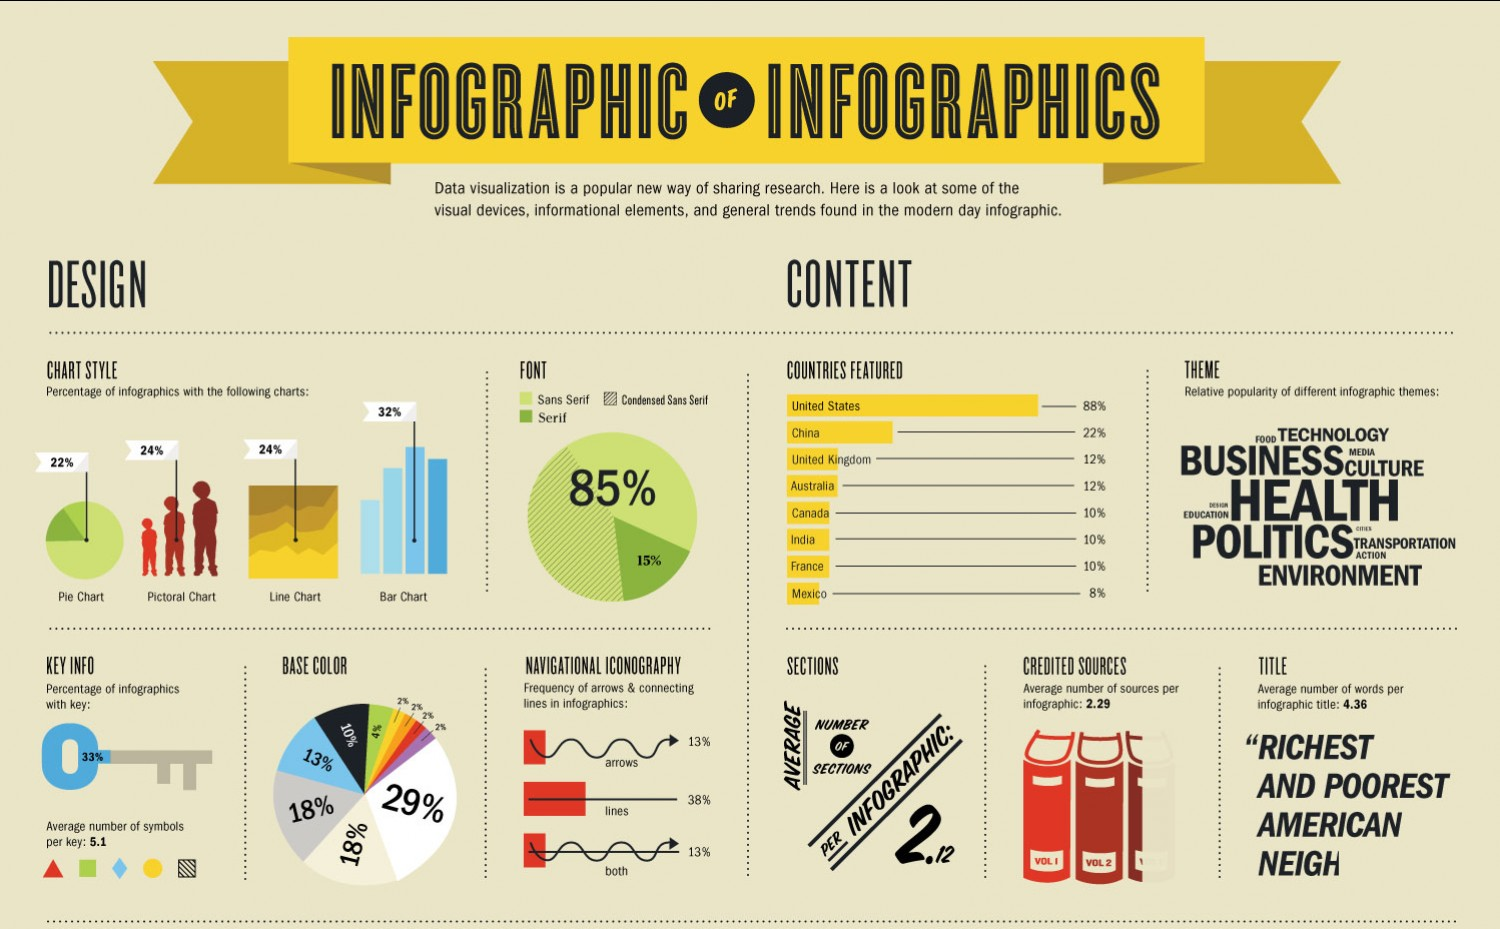 /uploaded_files/media/gallery/1490327594infographic-of-infographics_50290ae330621_w1500.png